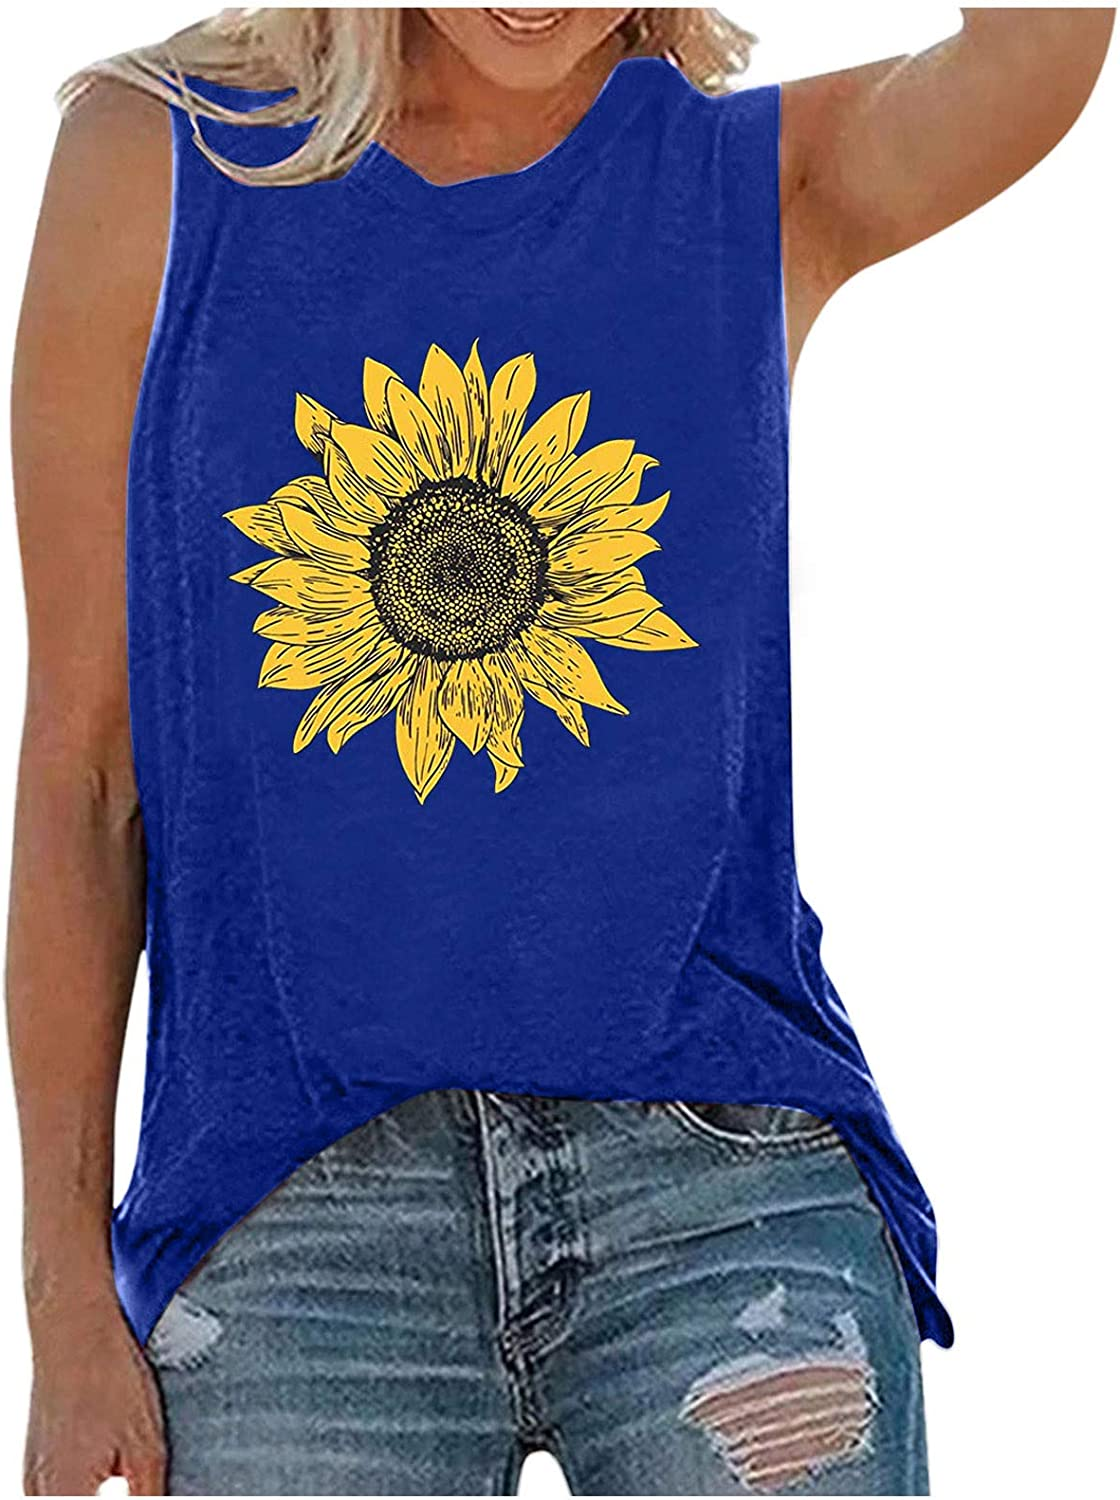 Forwelly Sunflower Graphic Shirt for Women Summer Casual Sleeveless O Neck Tank Top Vest Tunic T Shirt